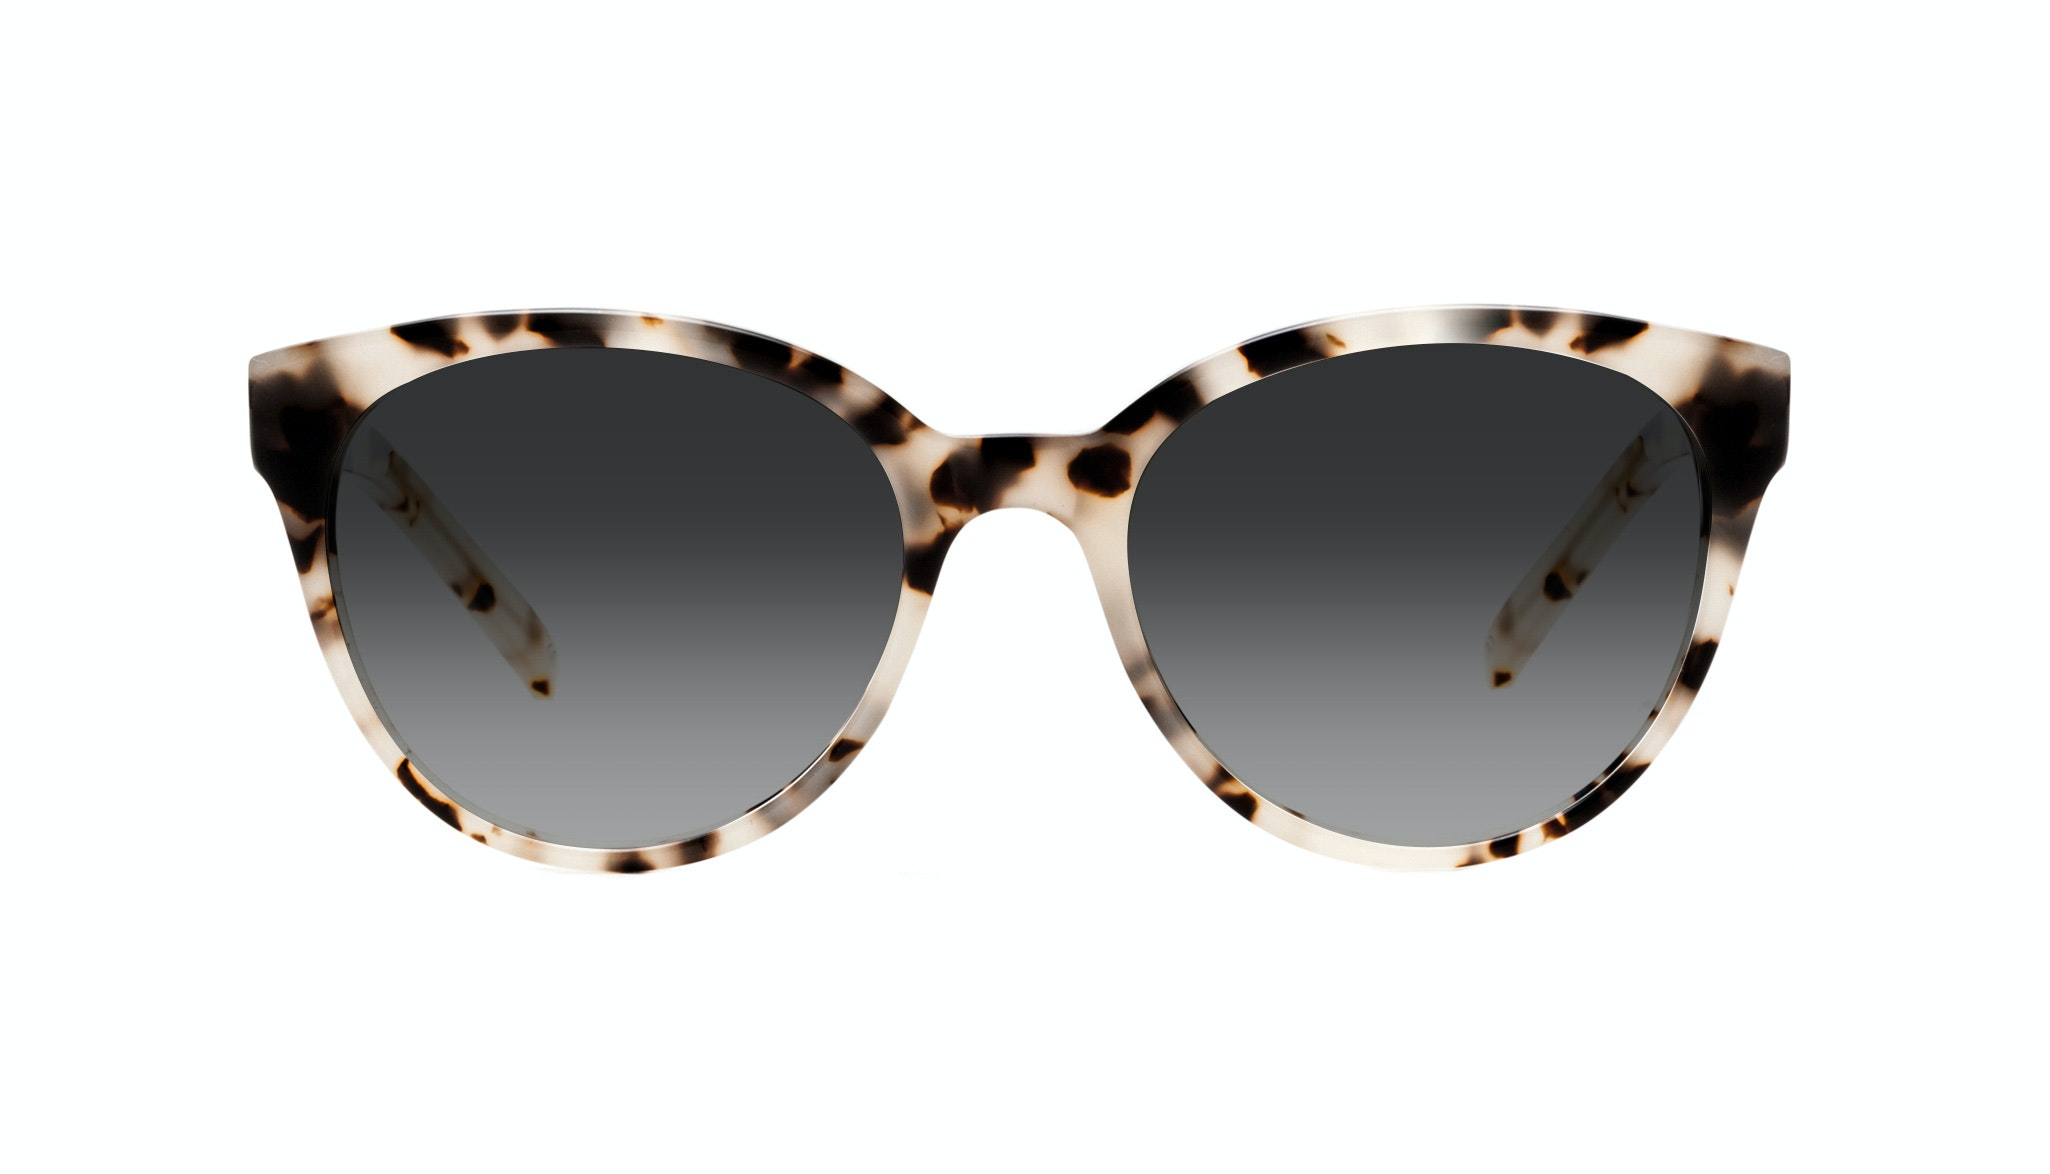 Affordable Fashion Glasses Cat Eye Round Sunglasses Women Eclipse Granite Front